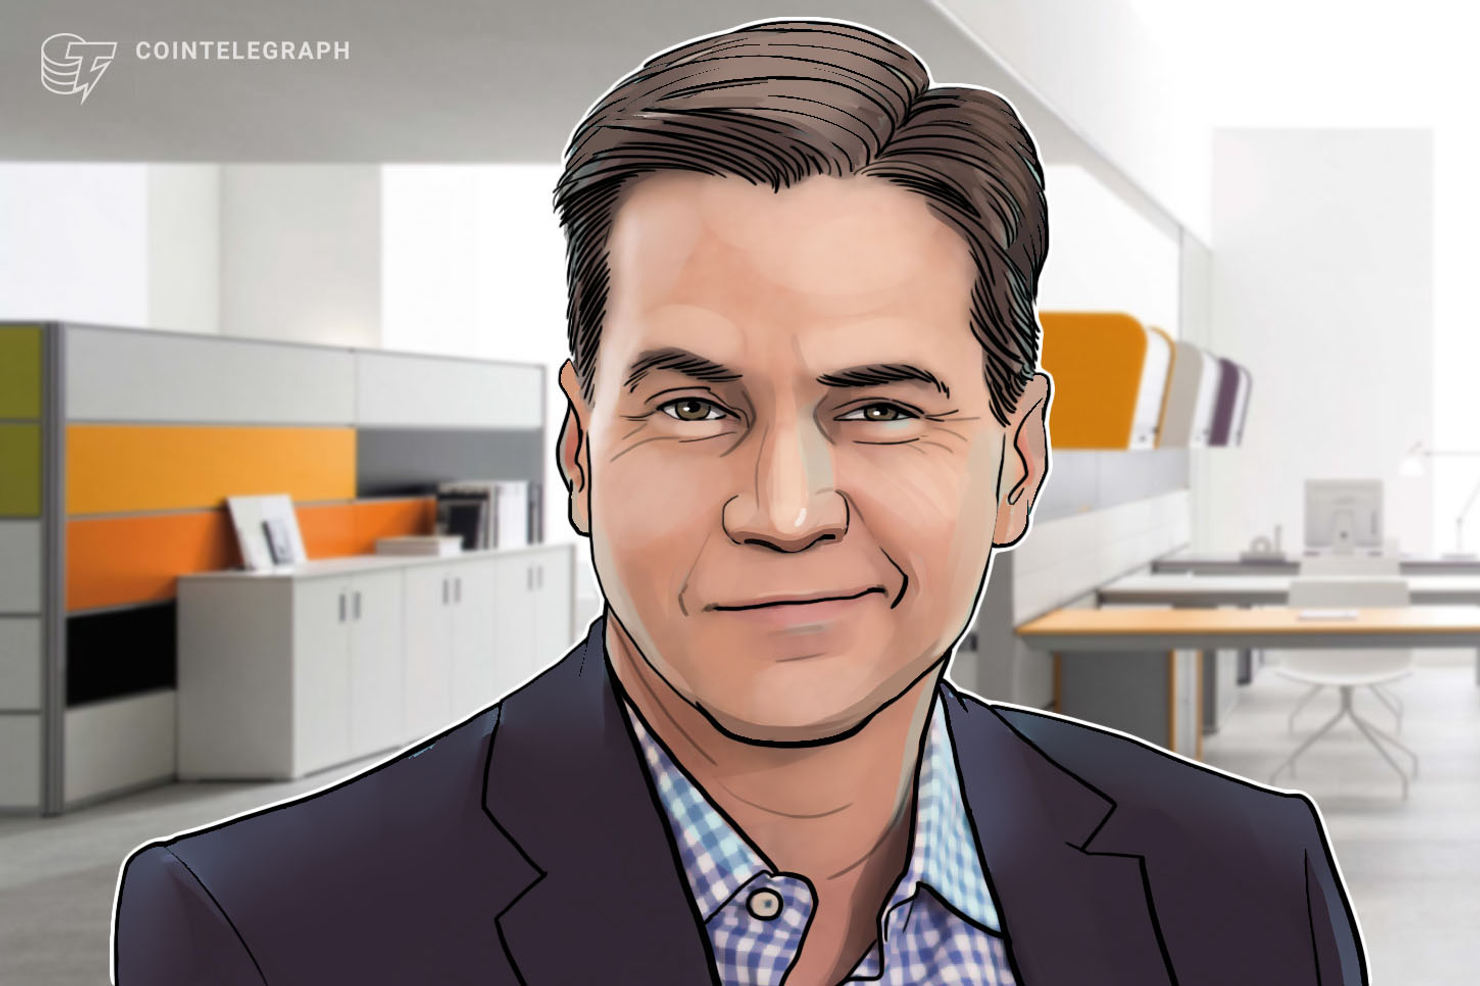 332349693f8 Bloomberg: Craig Wright Does Not Have Access to Bitcoin Fortune